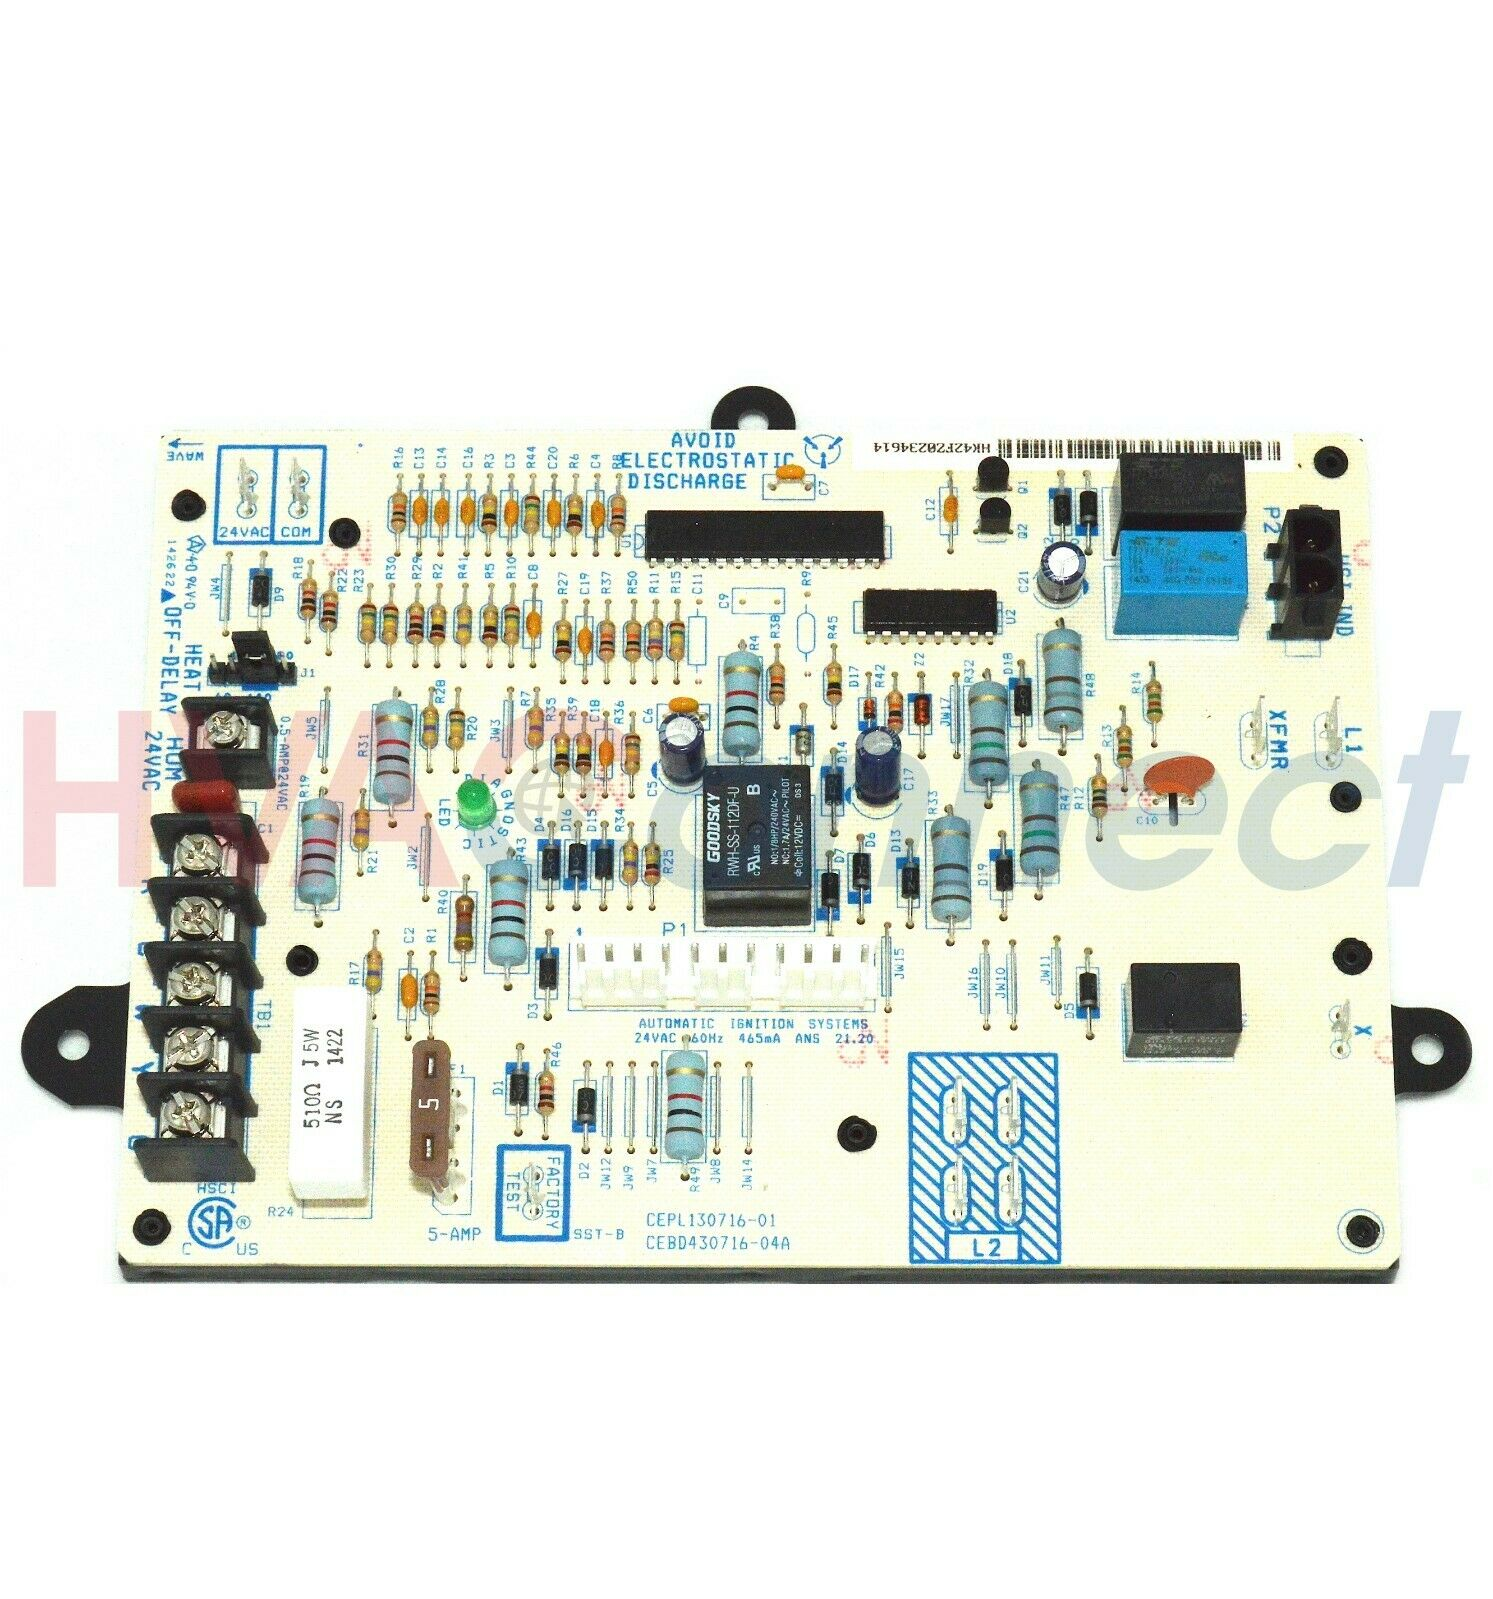 Icp Heil Tempstar Furnace Control Circuit Board Cepl130716 01 Wiring Diagram 1 Of 1only 5 Available